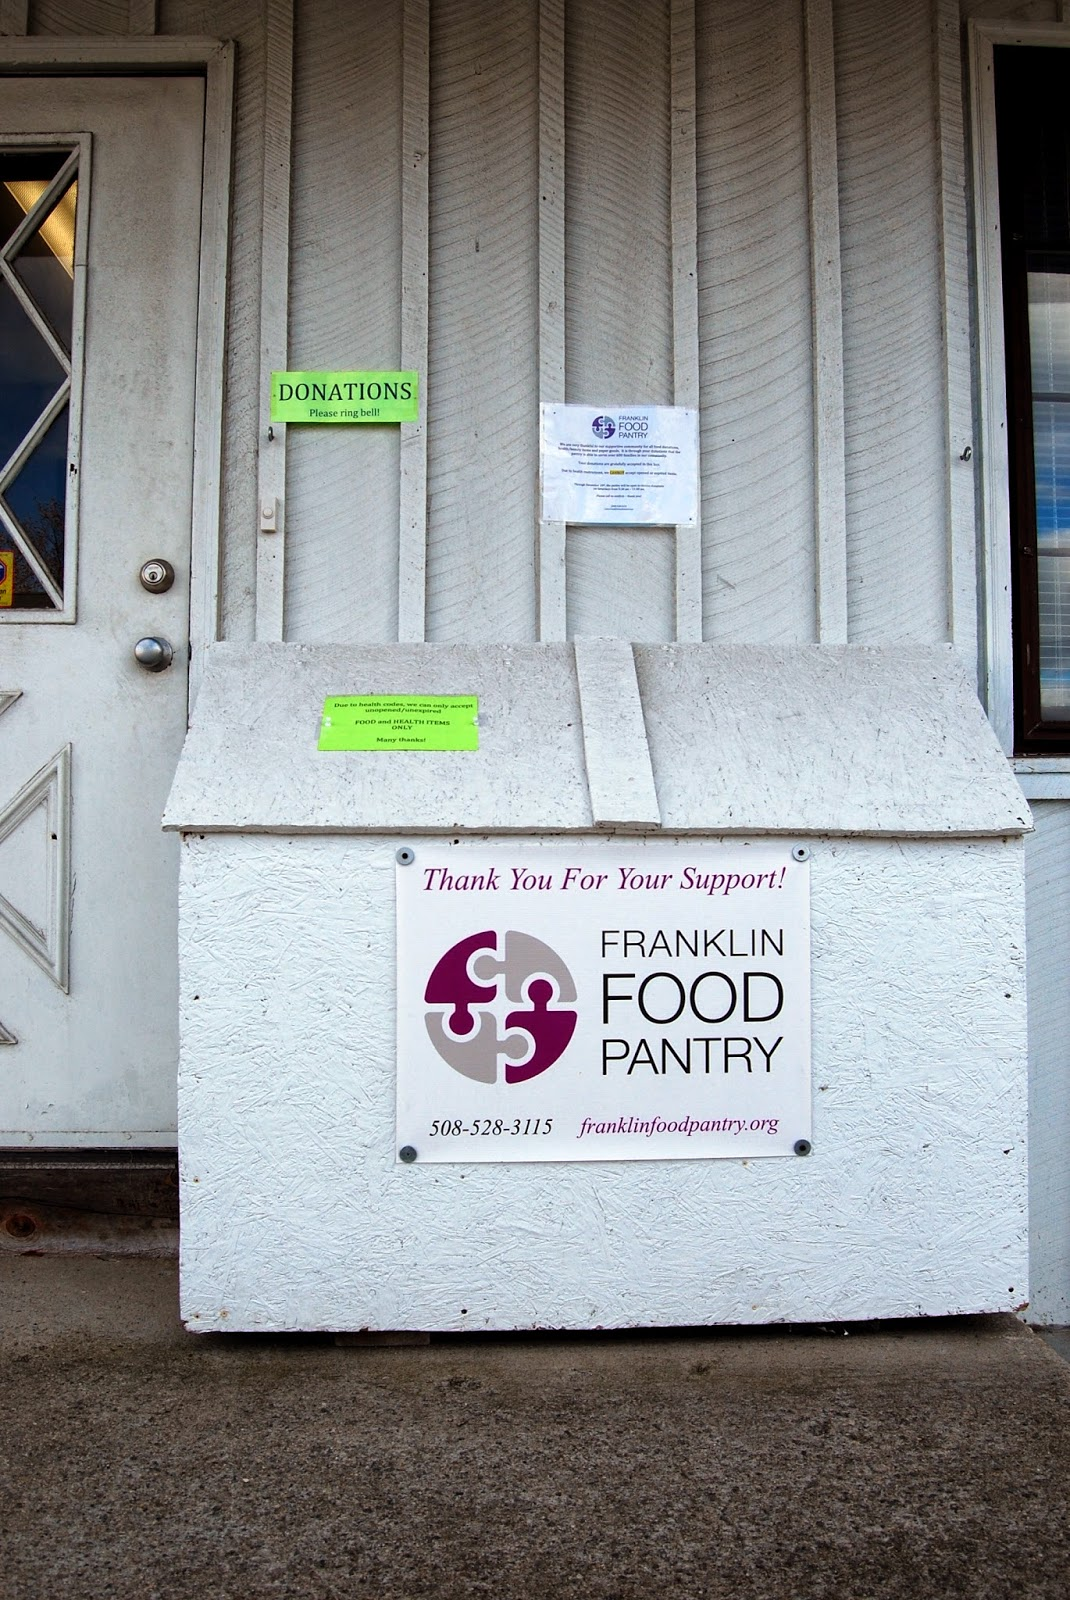 Franklin Food Pantry - donation drop off box (weather permitting)